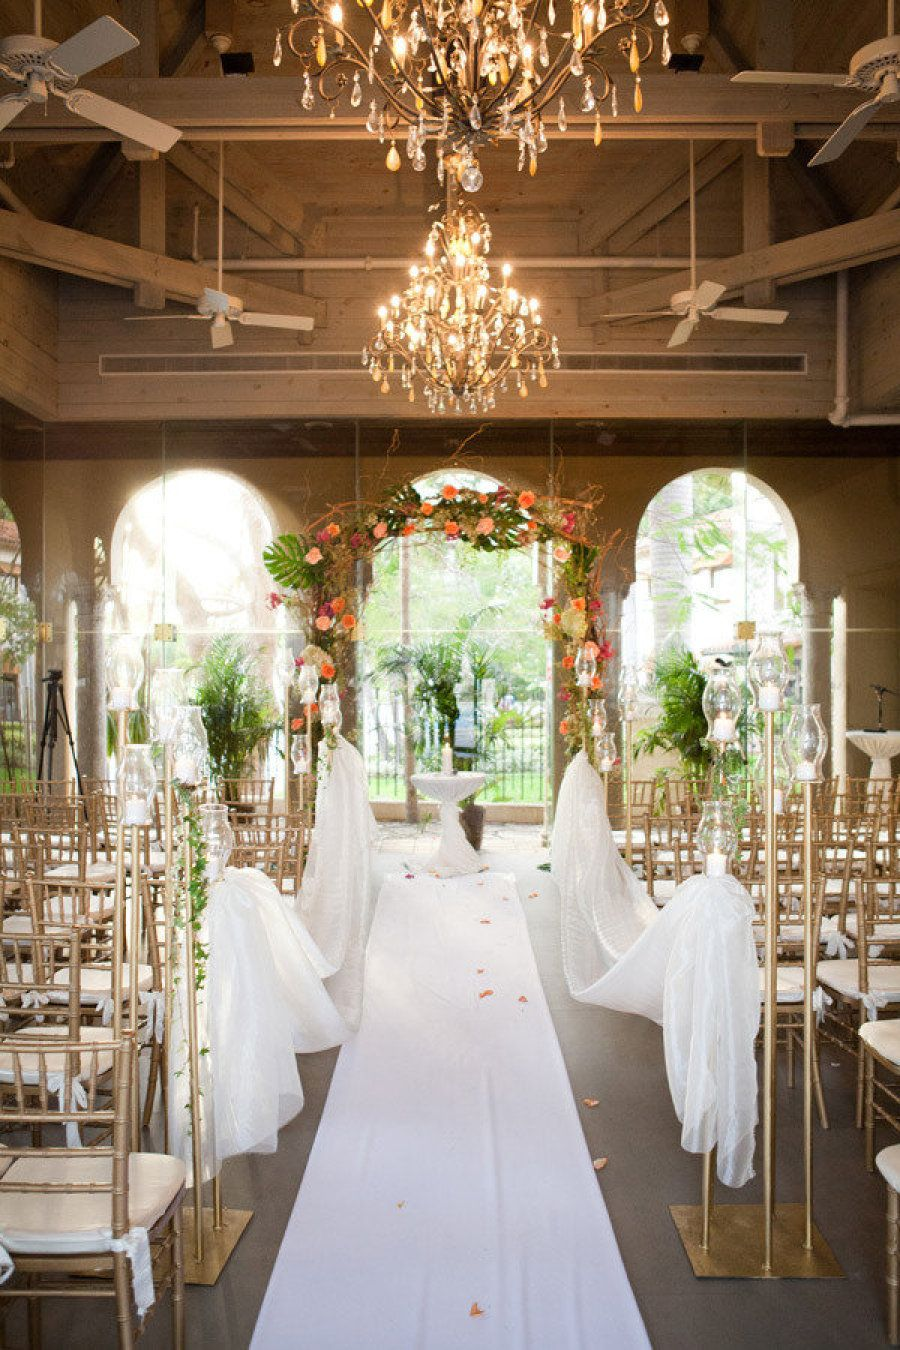 Miami wedding at coral gables country club by kt merry photography